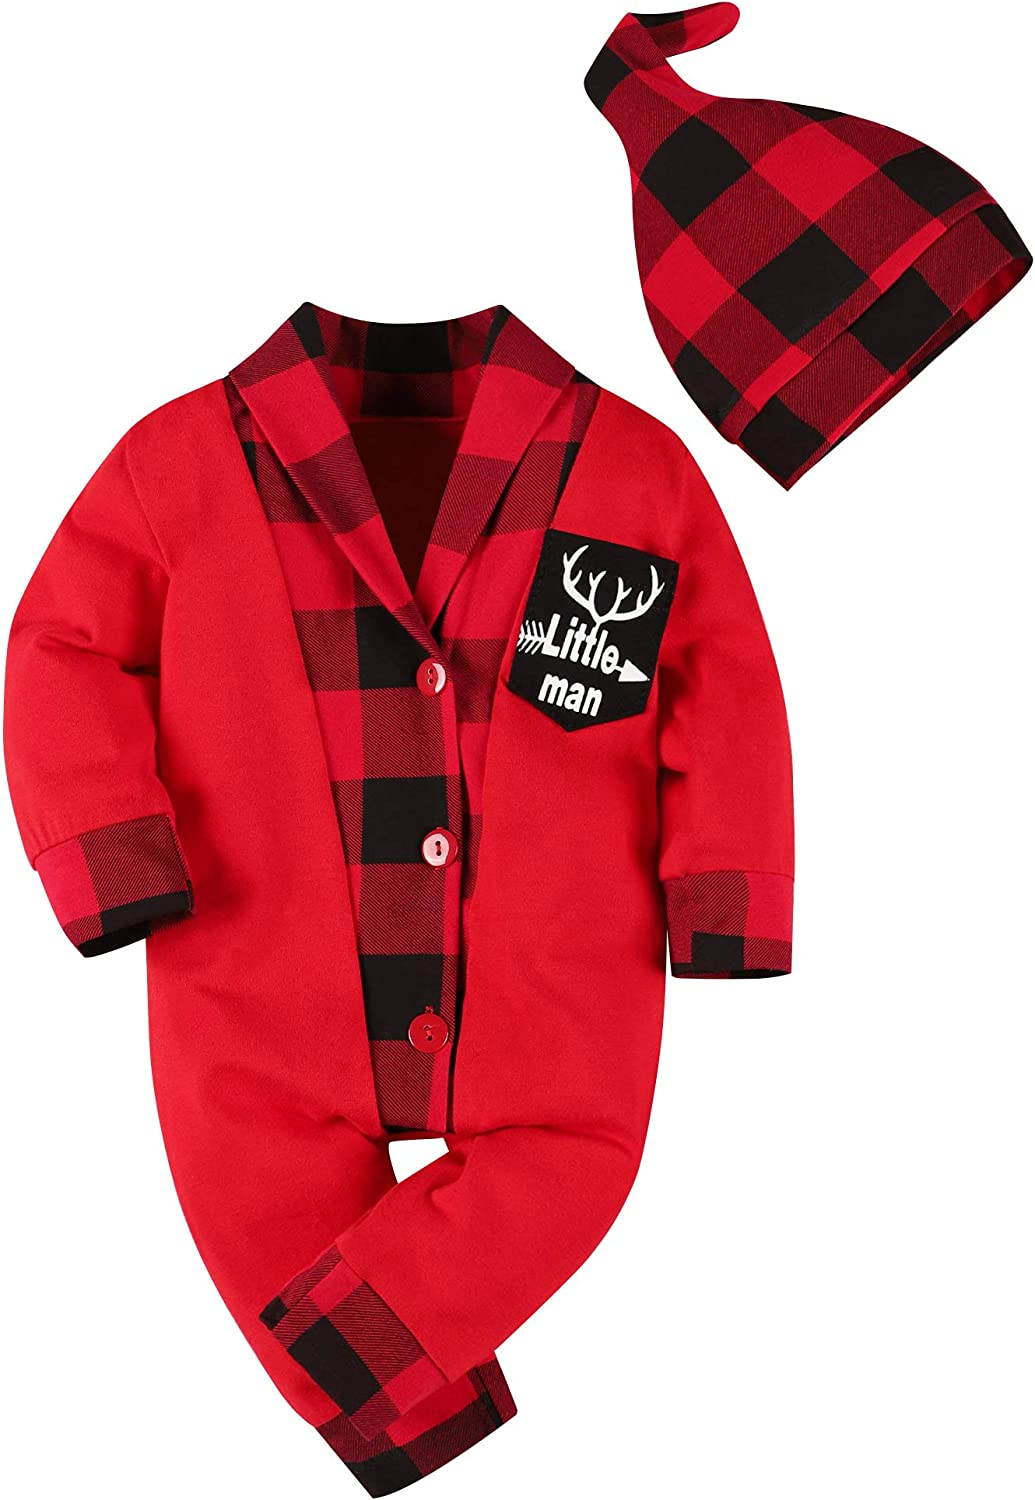 Newborn Baby Boy Clothes Red Plaid Christmas Outfit Little Man Romper Bodysuit Overall with Hat 2pc Infant Clothes